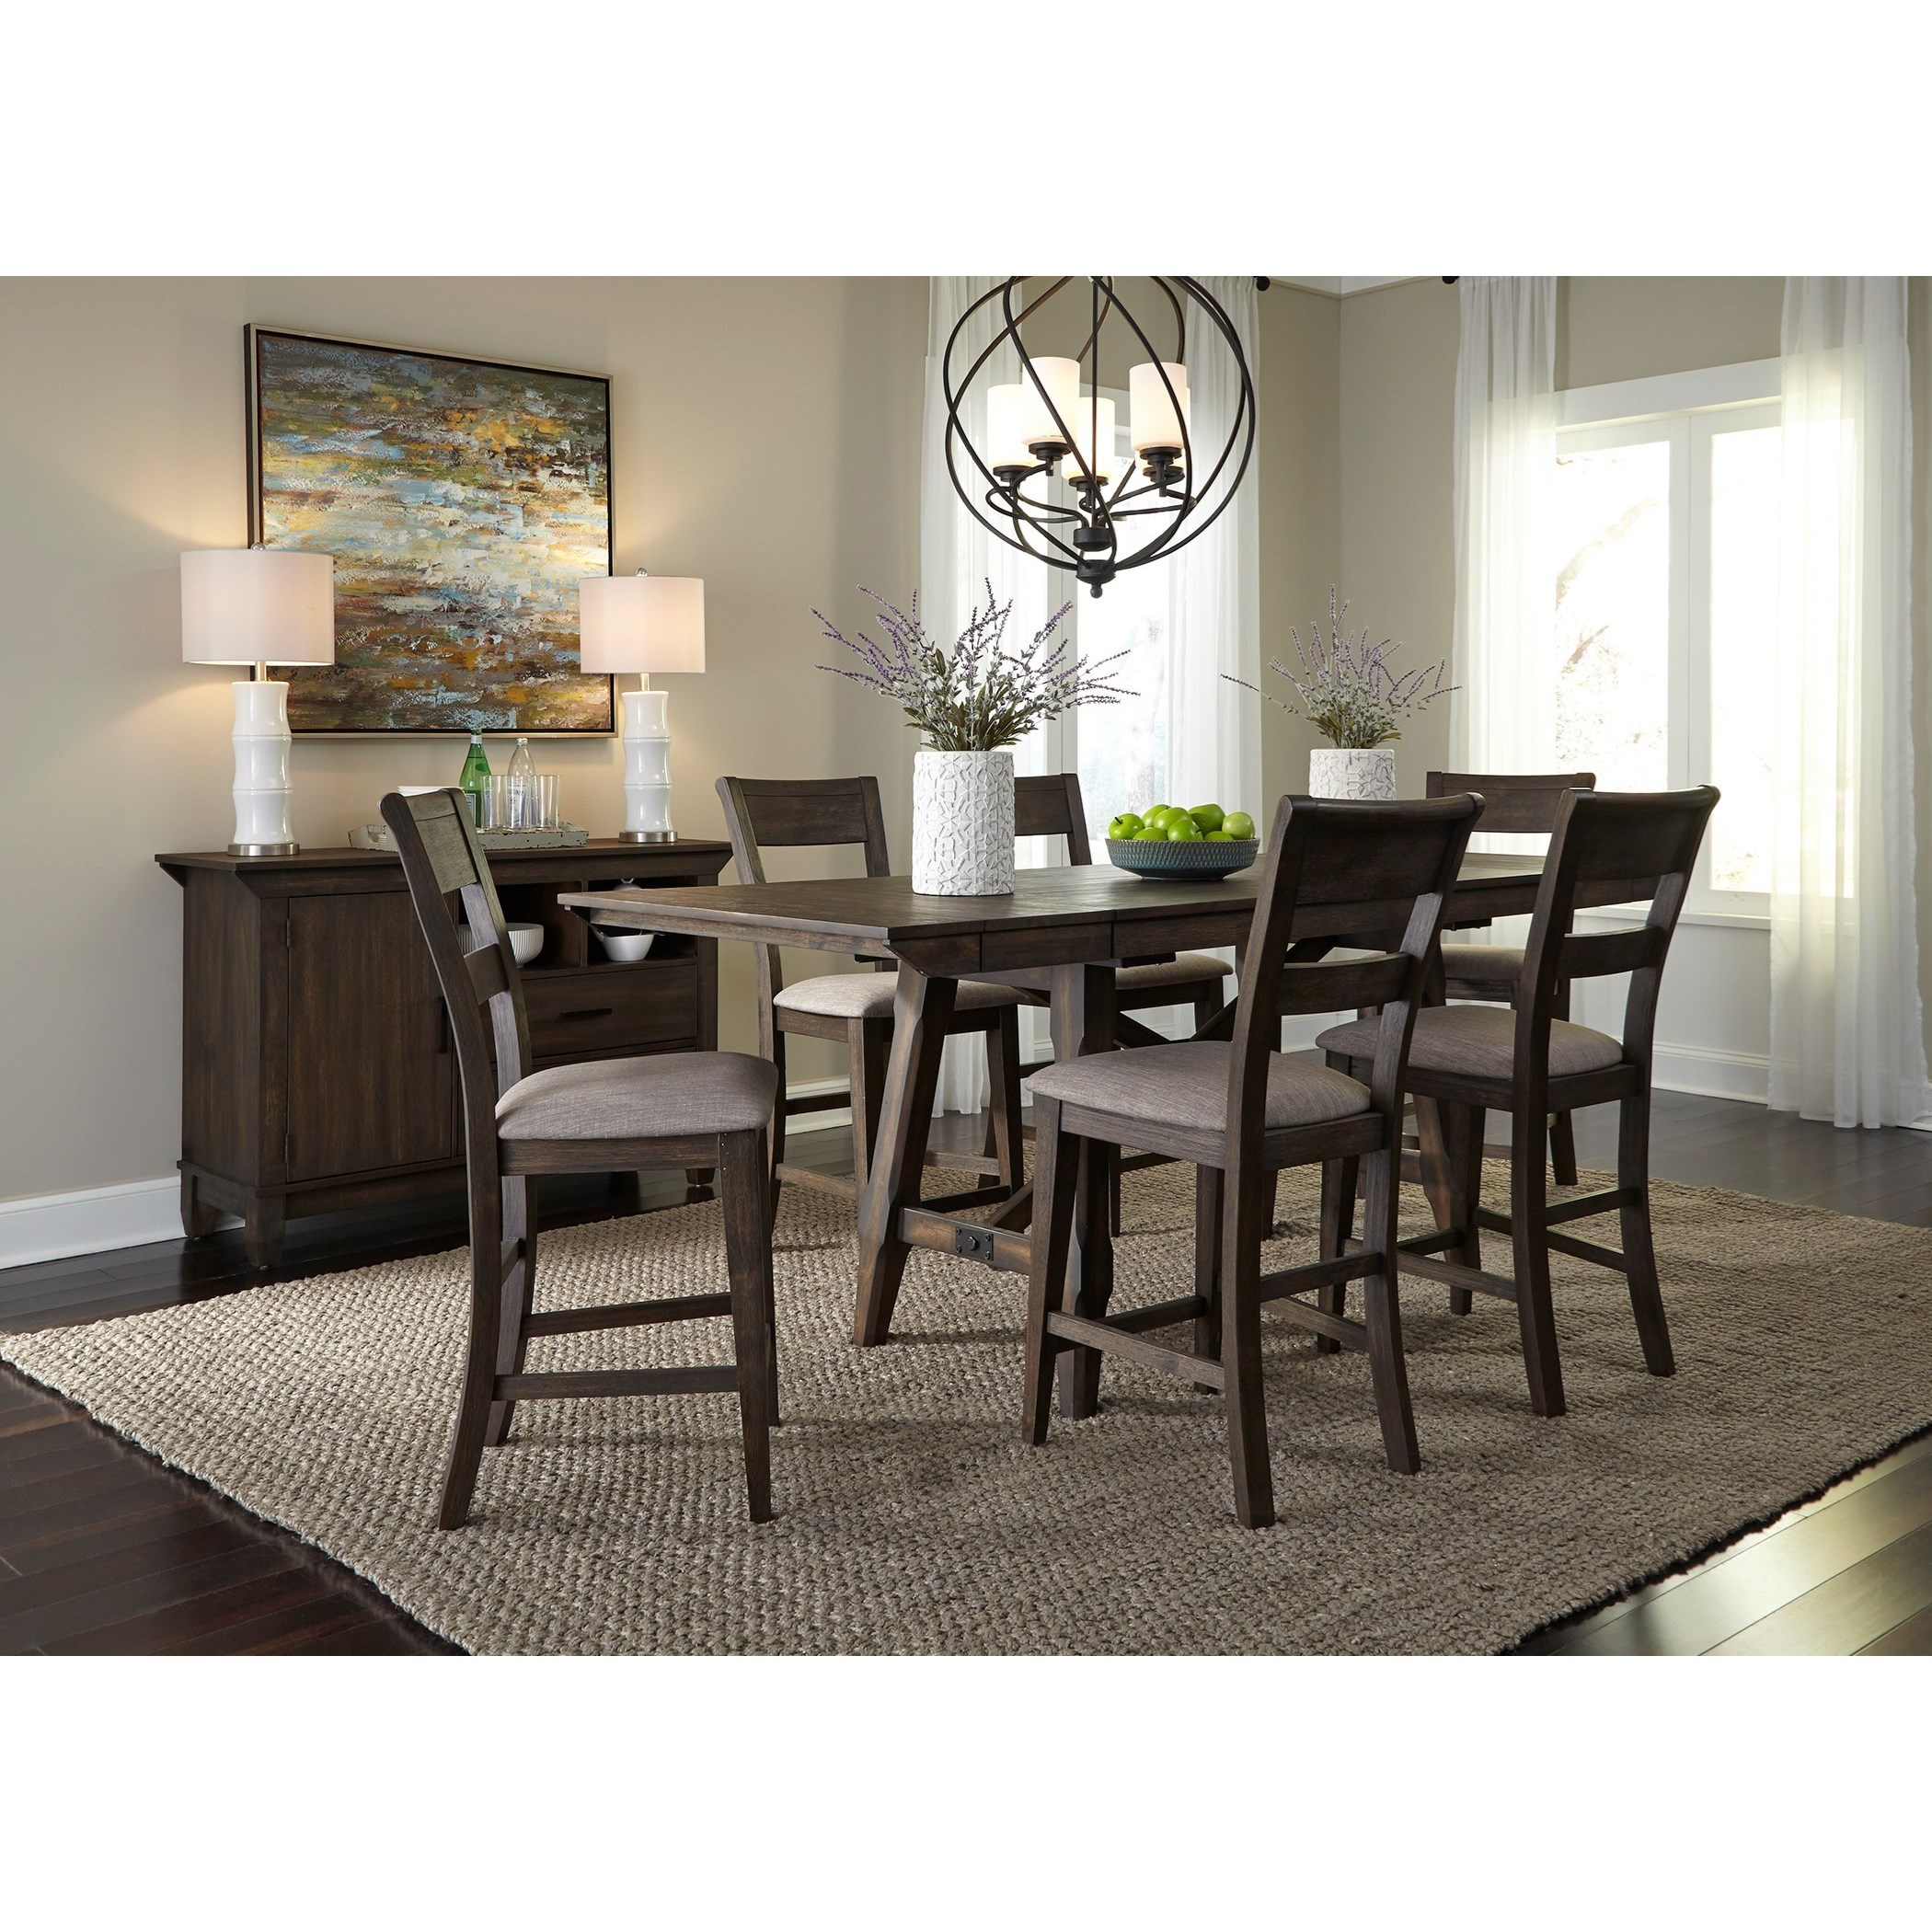 Double Bridge Dining Room Group by Liberty Furniture at Northeast Factory Direct